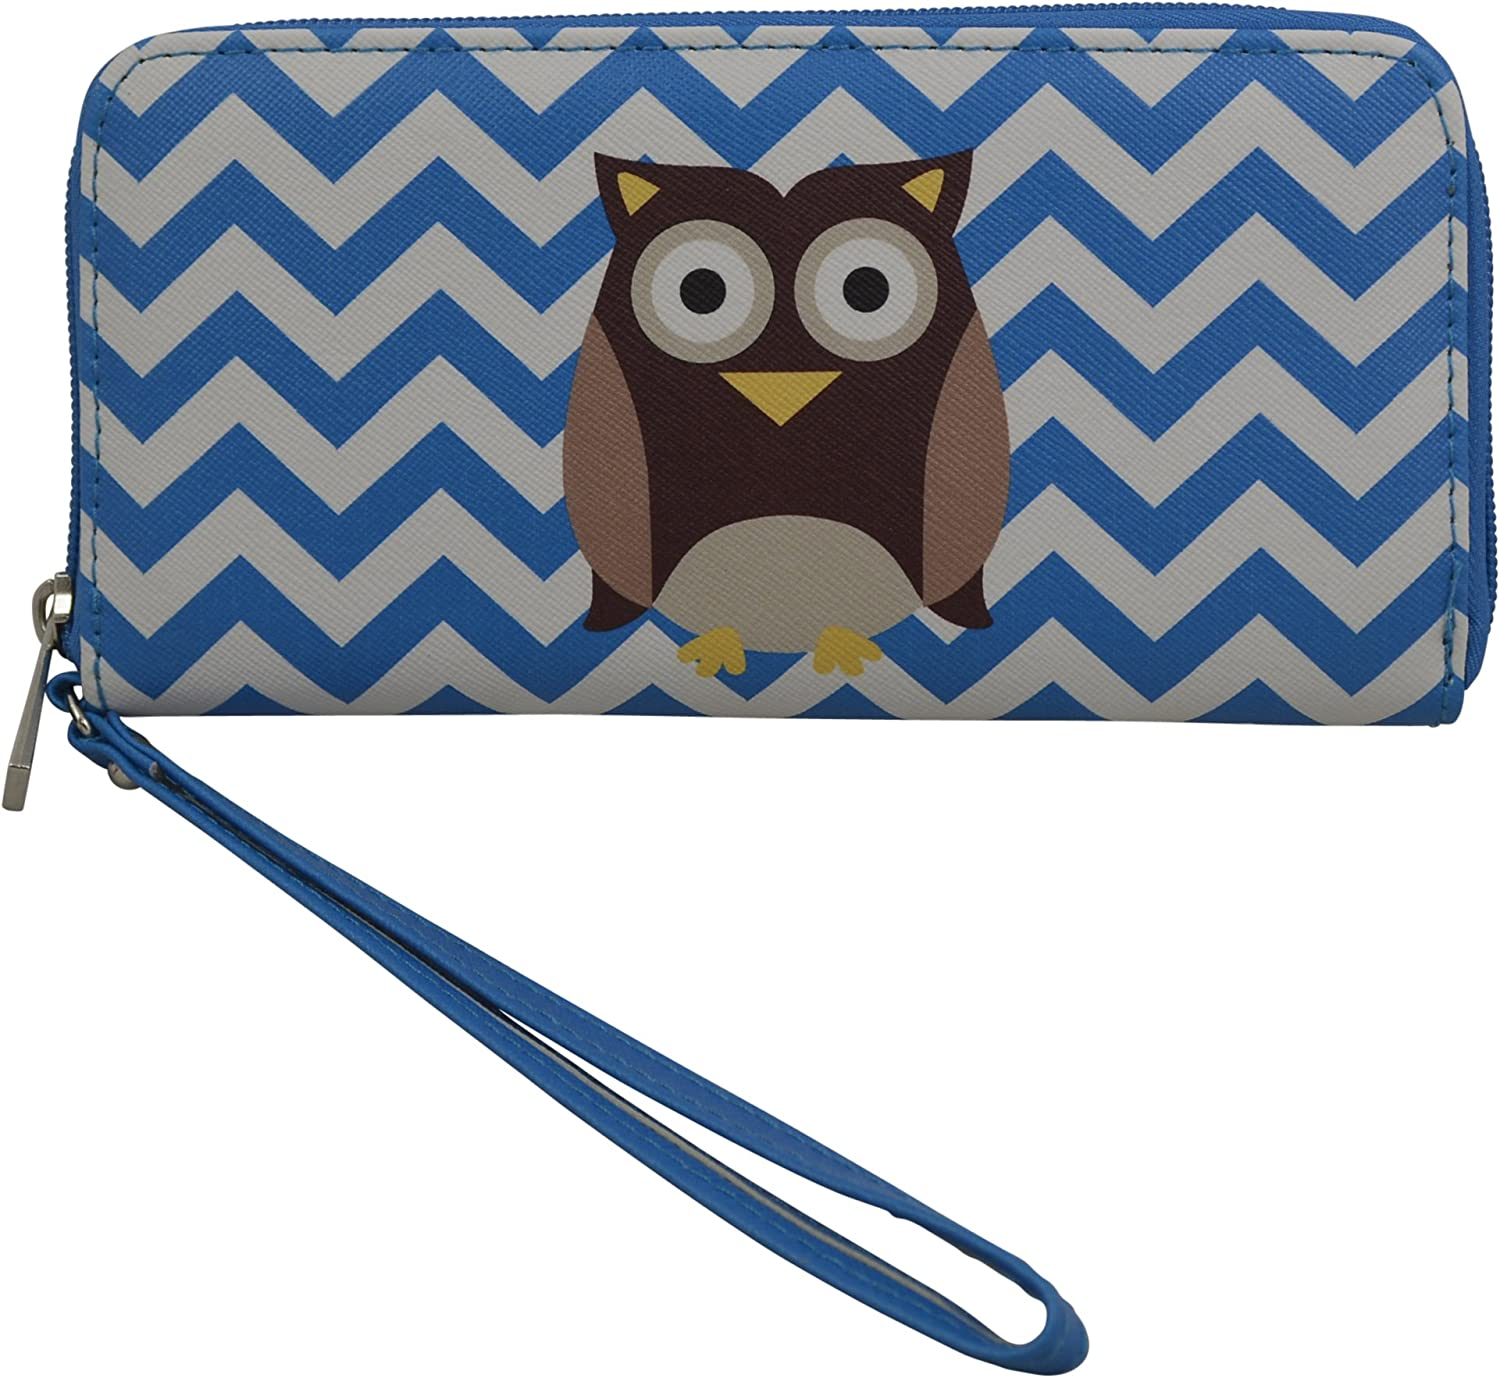 Women's girls Mini Clutch w Writlet  Wallet with Fox and Owl Elephant Print on Canvas Faux Leather